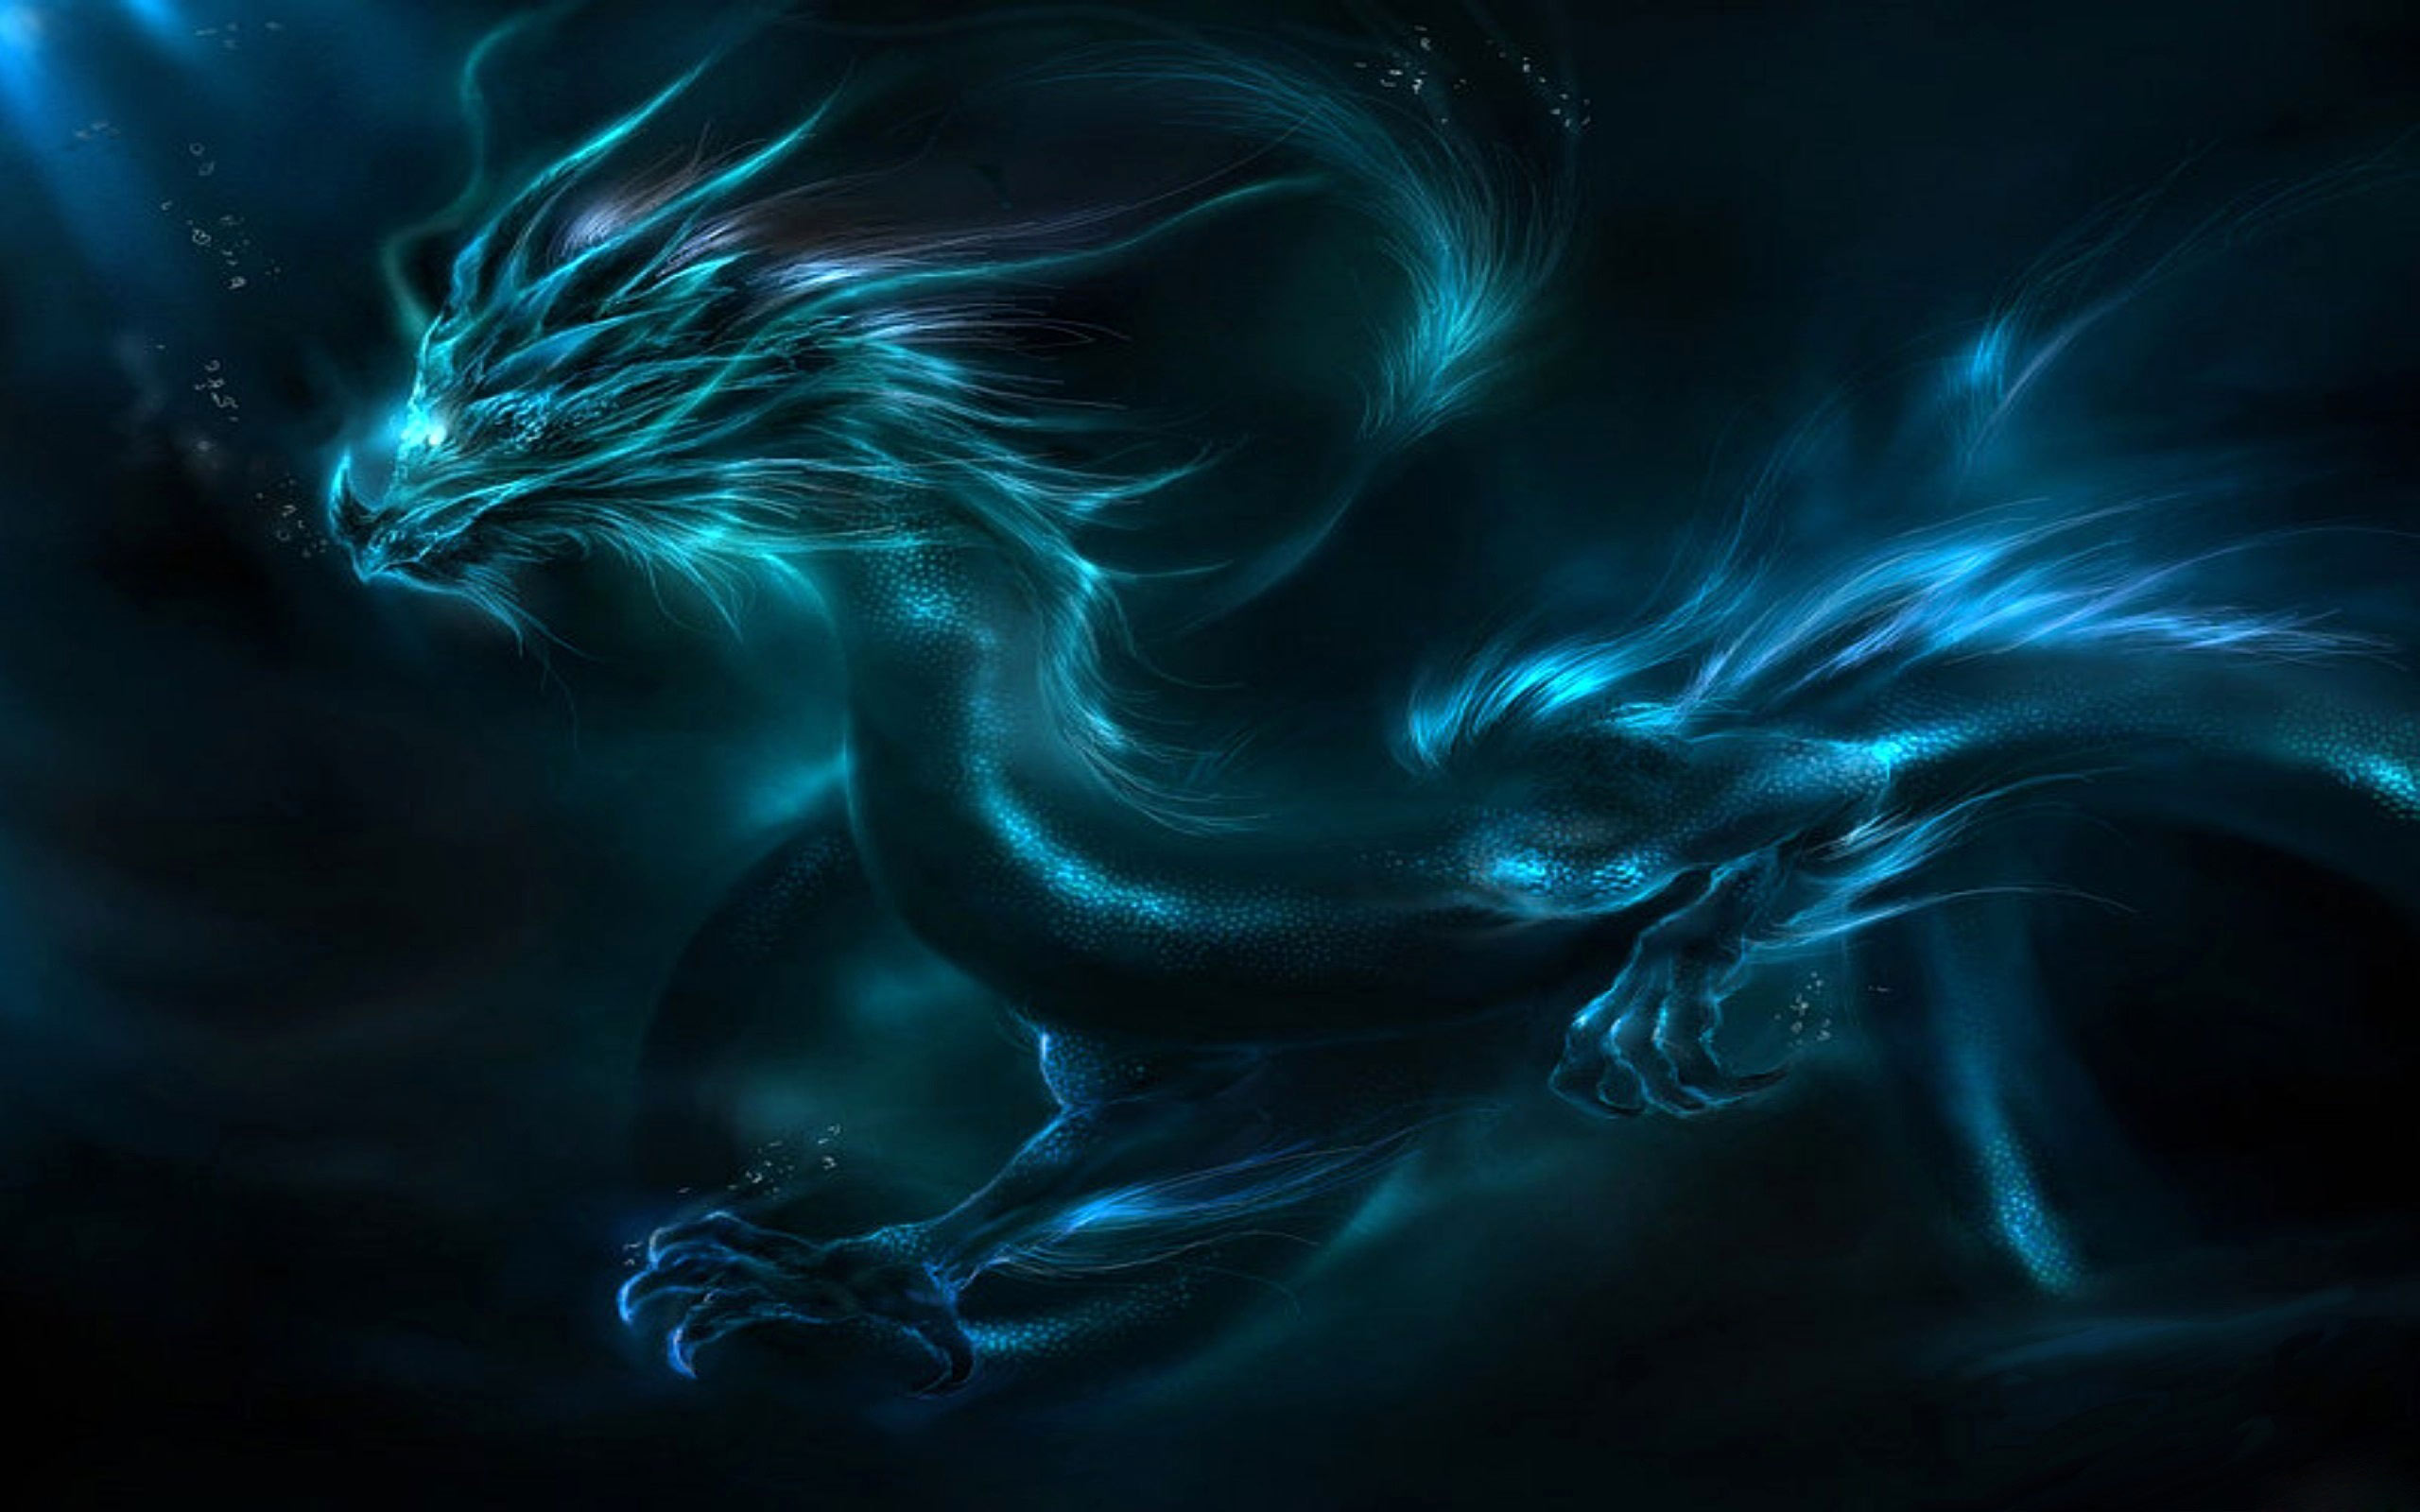 http://www.devinemiracles.com/images/Blue-Dragon-Wallpaper.jpg